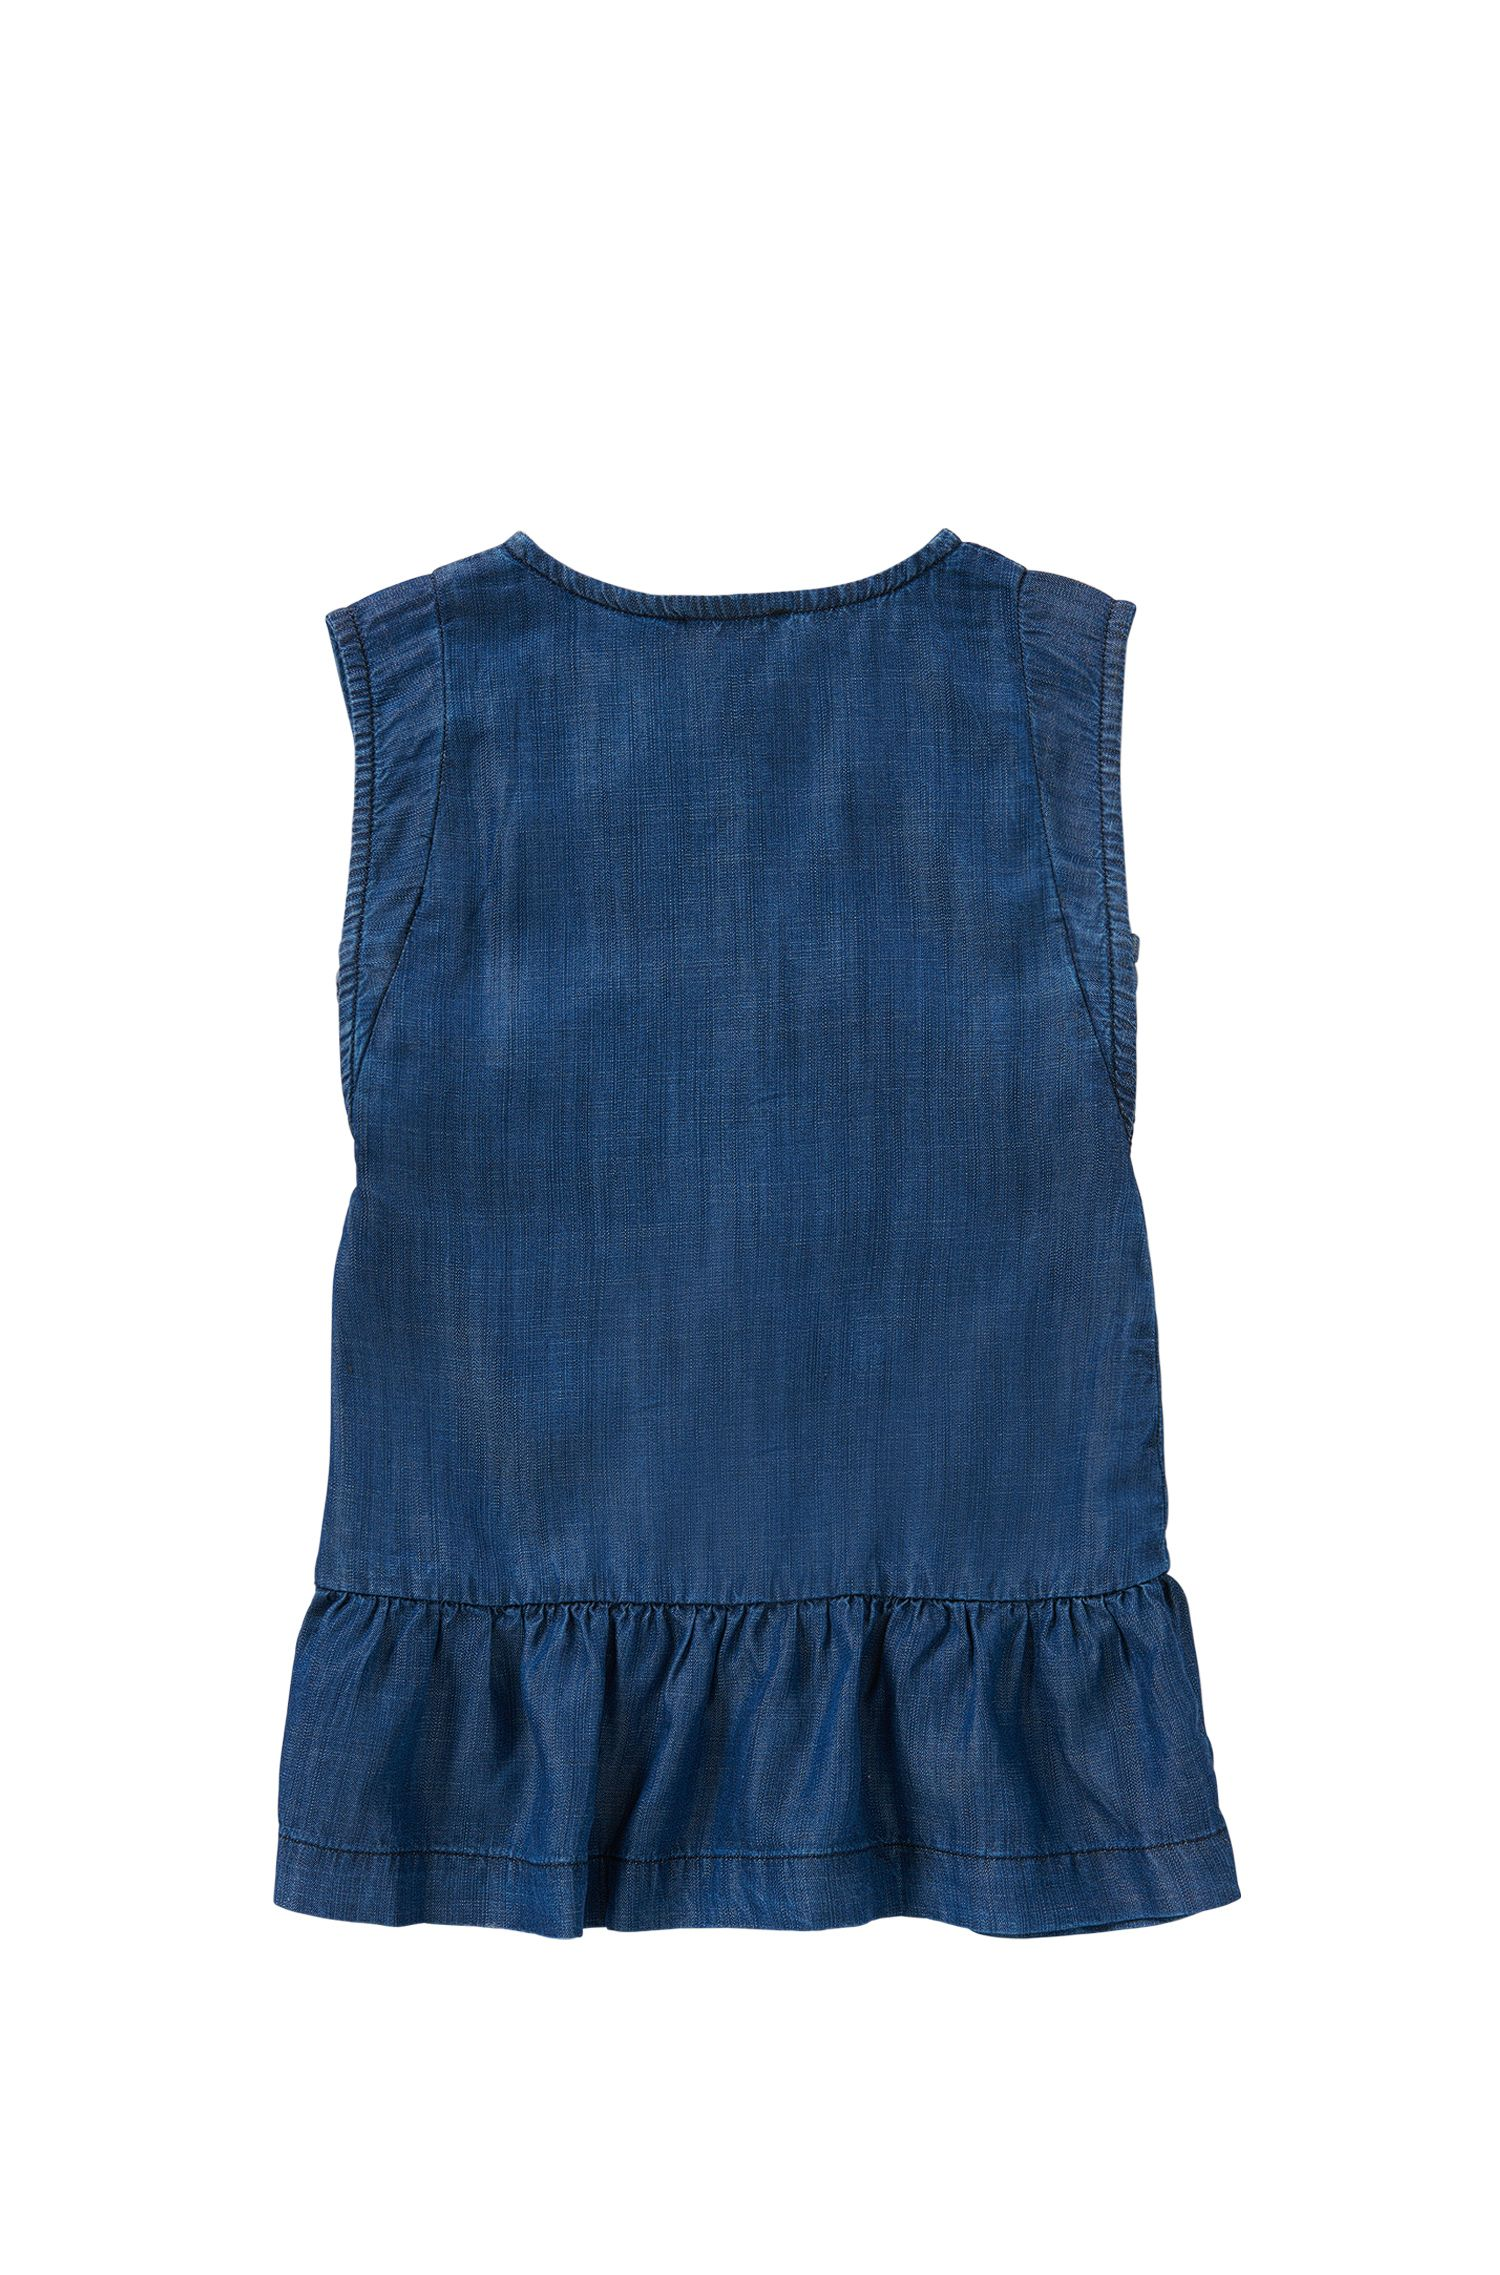 'J12149' | Girls Tencel Denim Buttoned Dress